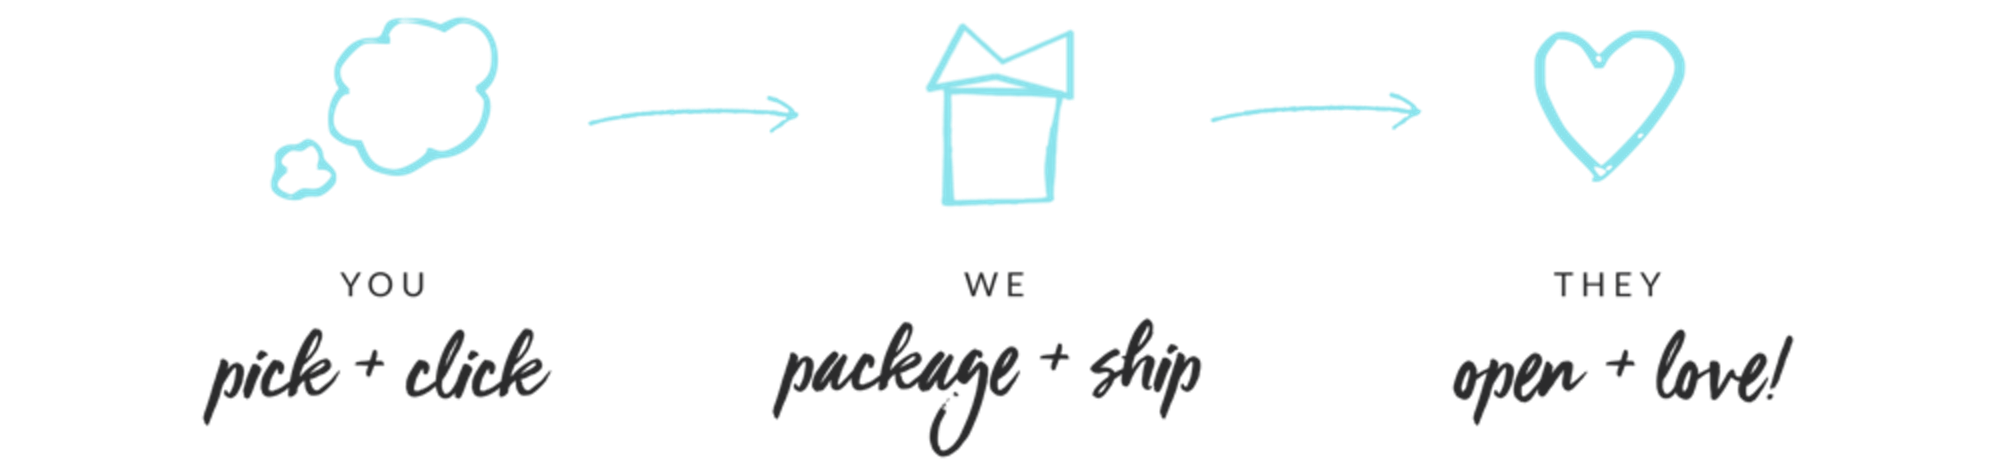 You pick and click, we package and ship, they open and love!